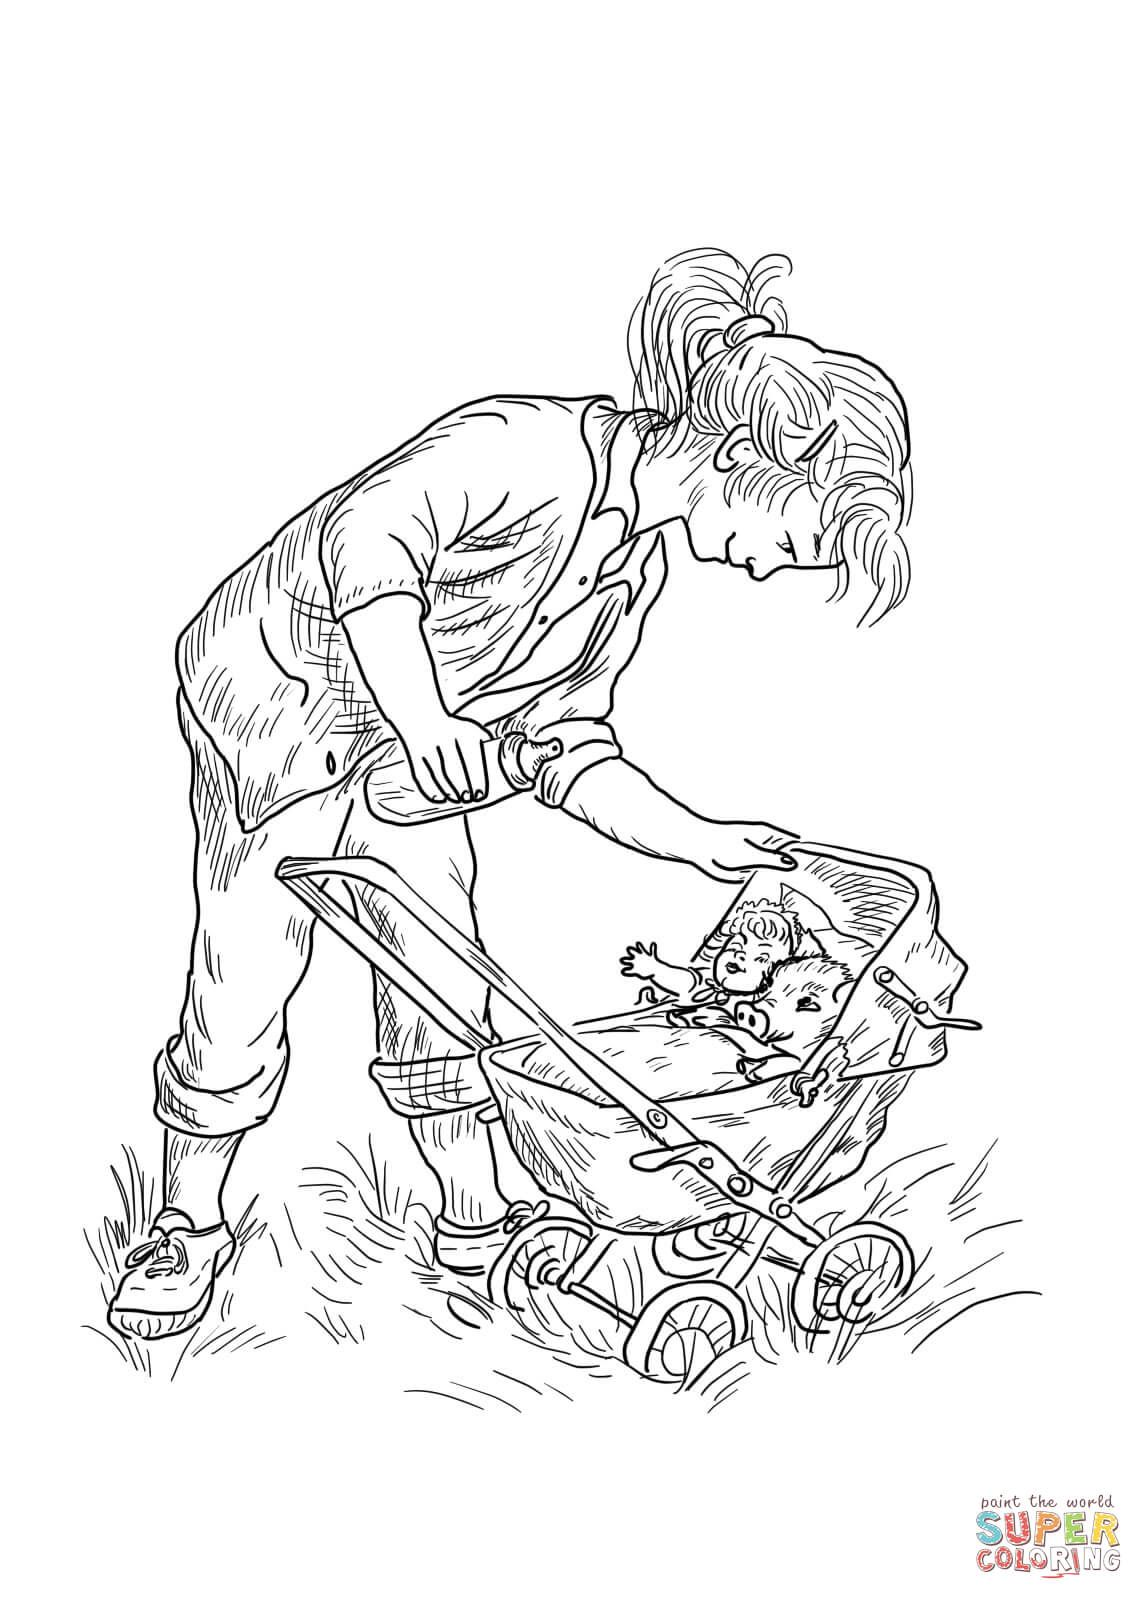 Fern pushes Wilber in her baby stroller | Coloring animals | Pinterest